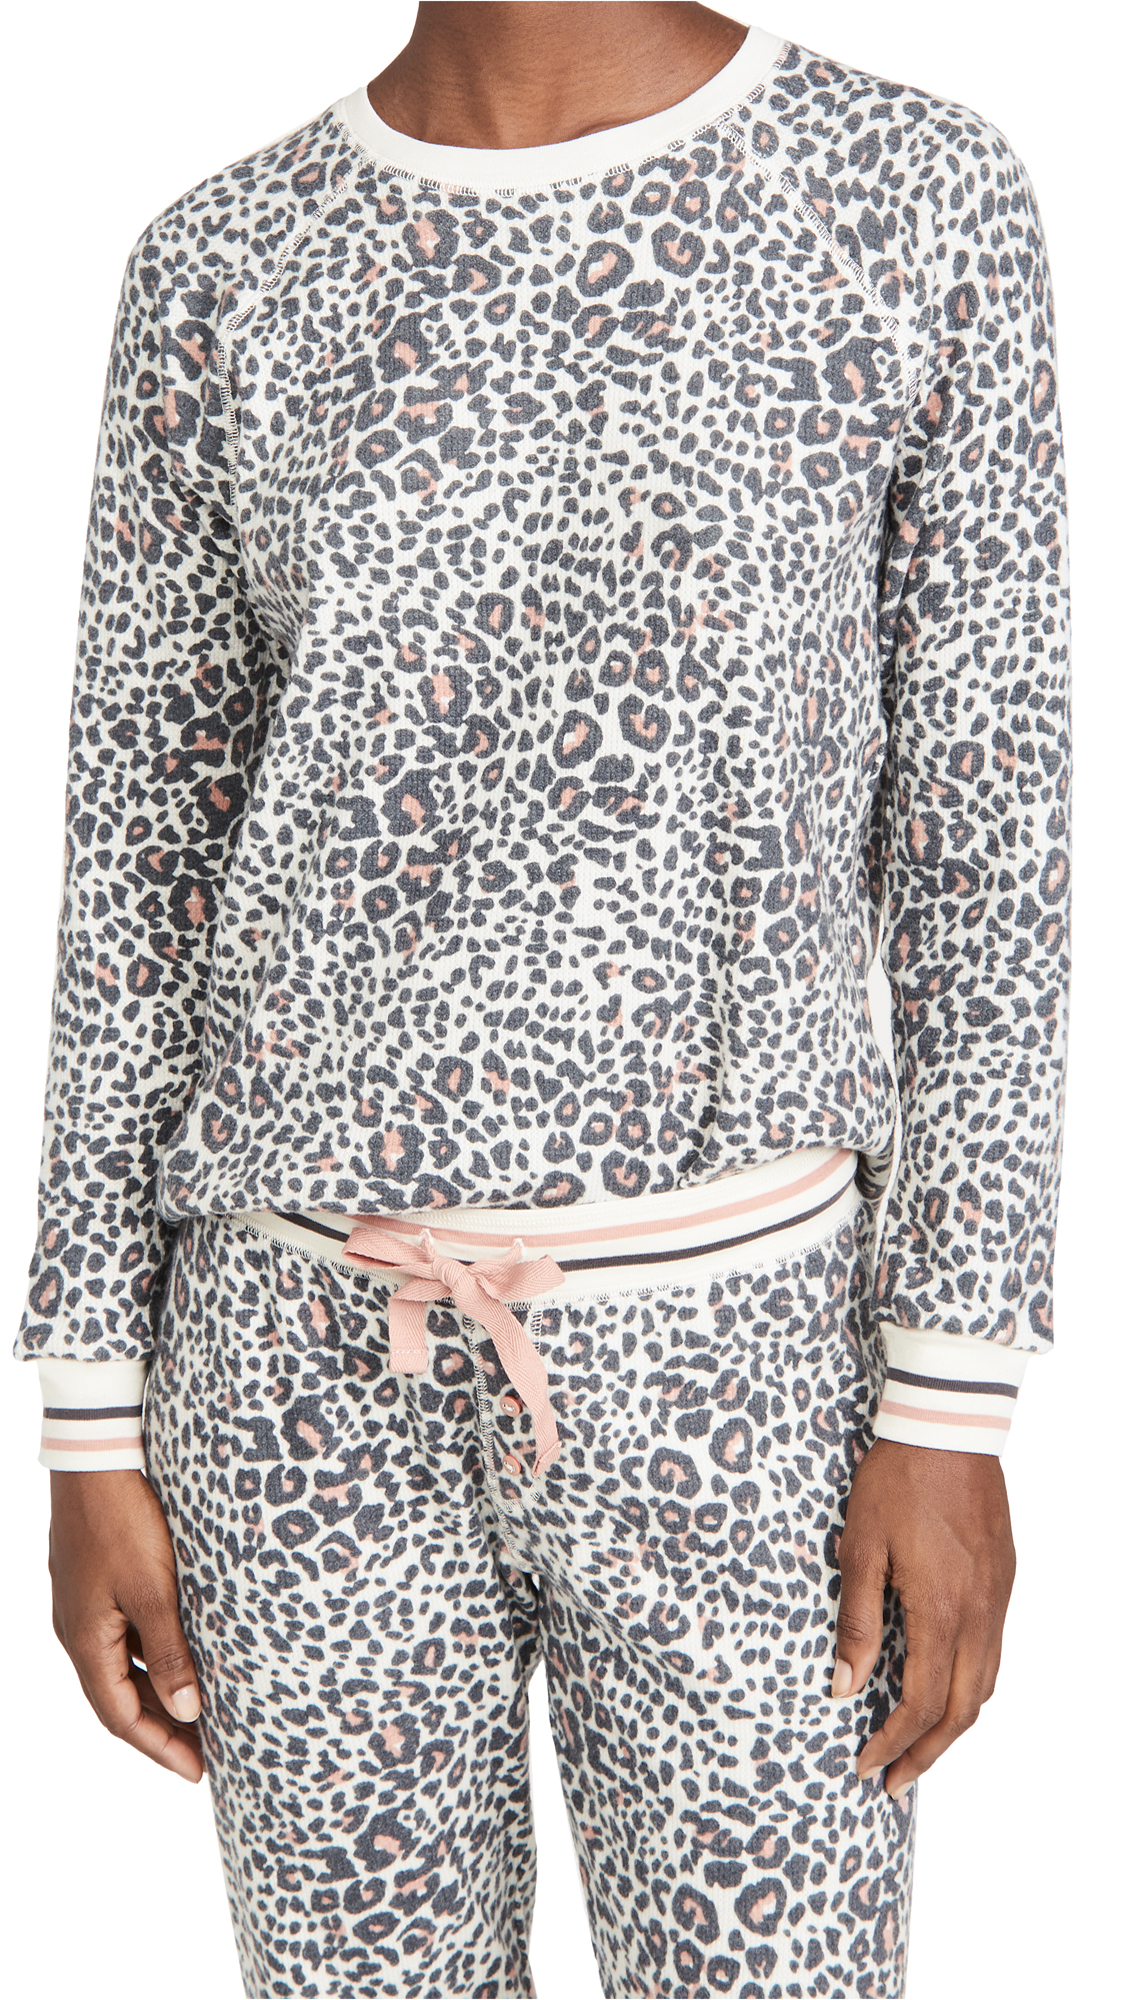 PJ Salvage Thermal Lounge Leopard Top